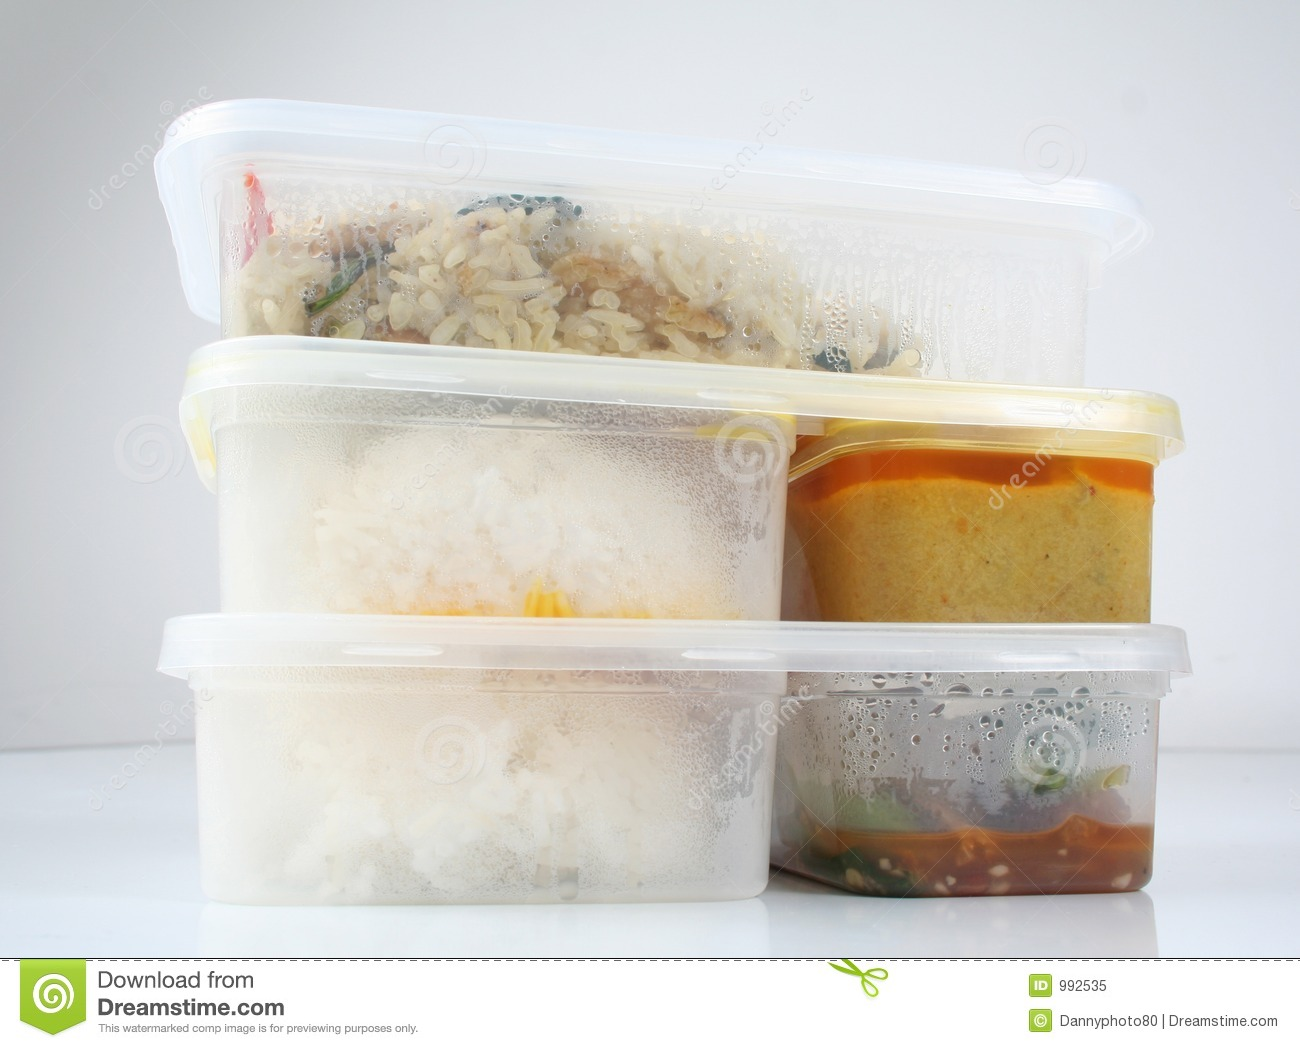 Chinese Take Away Food Royalty Free Stock Photo - Image: 992535